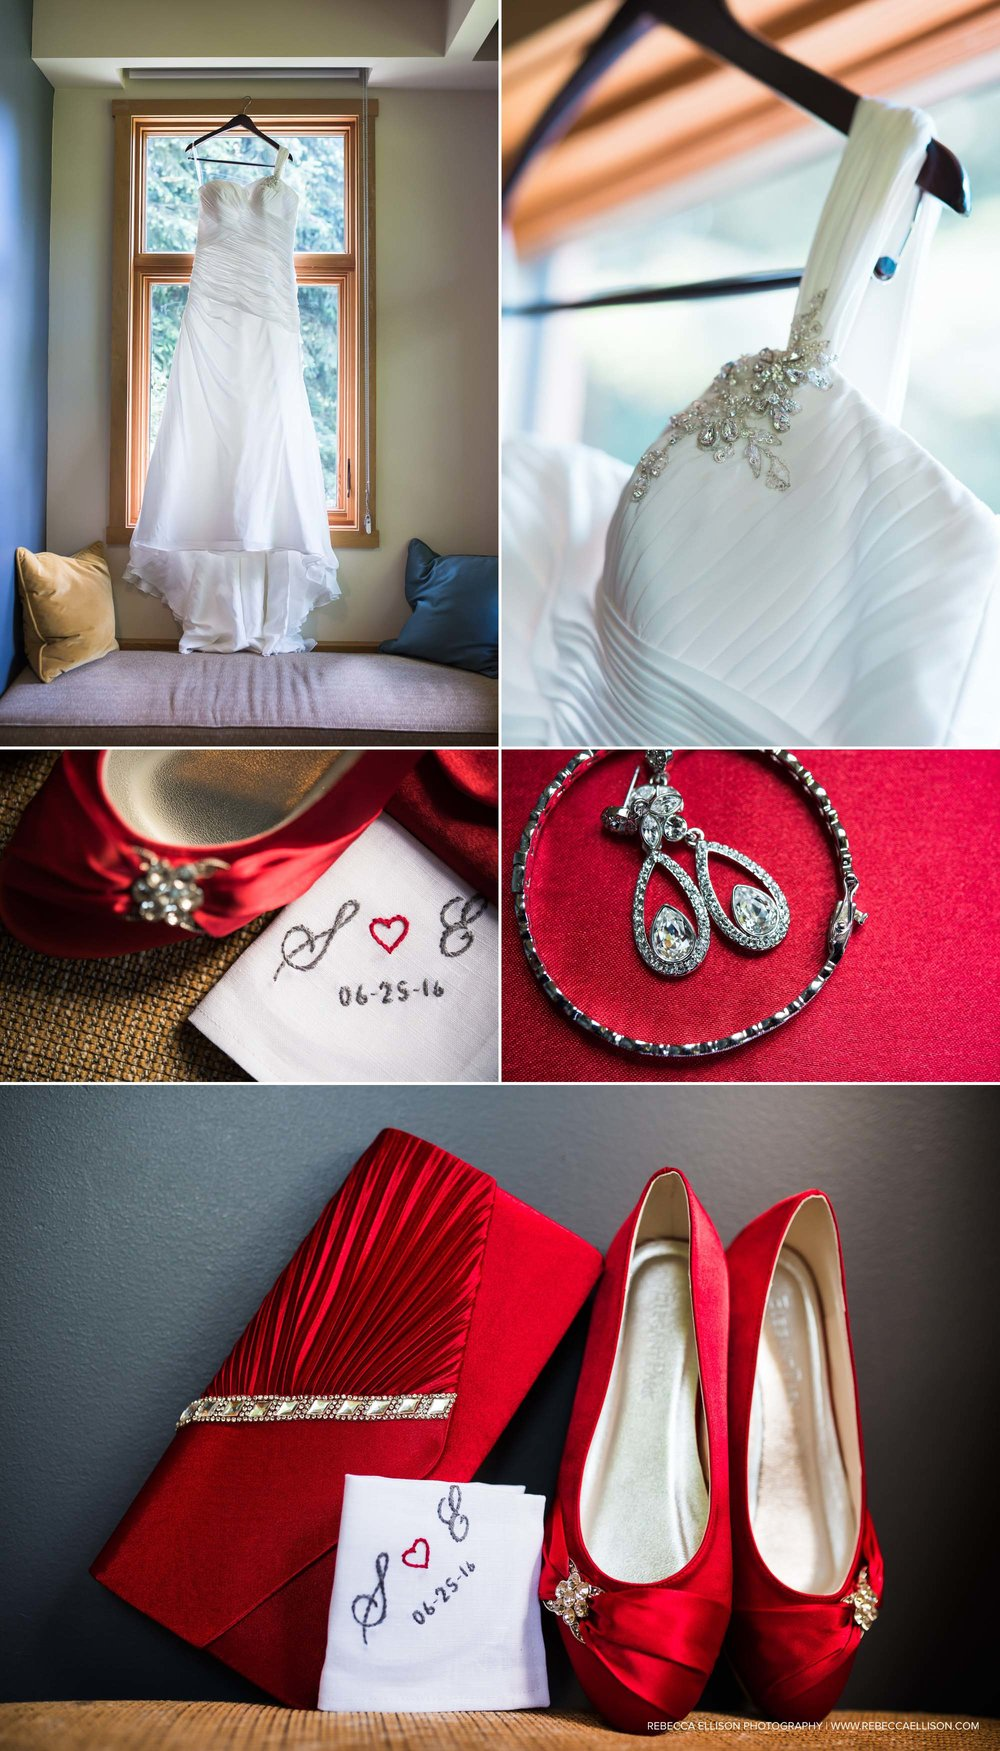 Same-sex-summer-wedding 1web.jpg